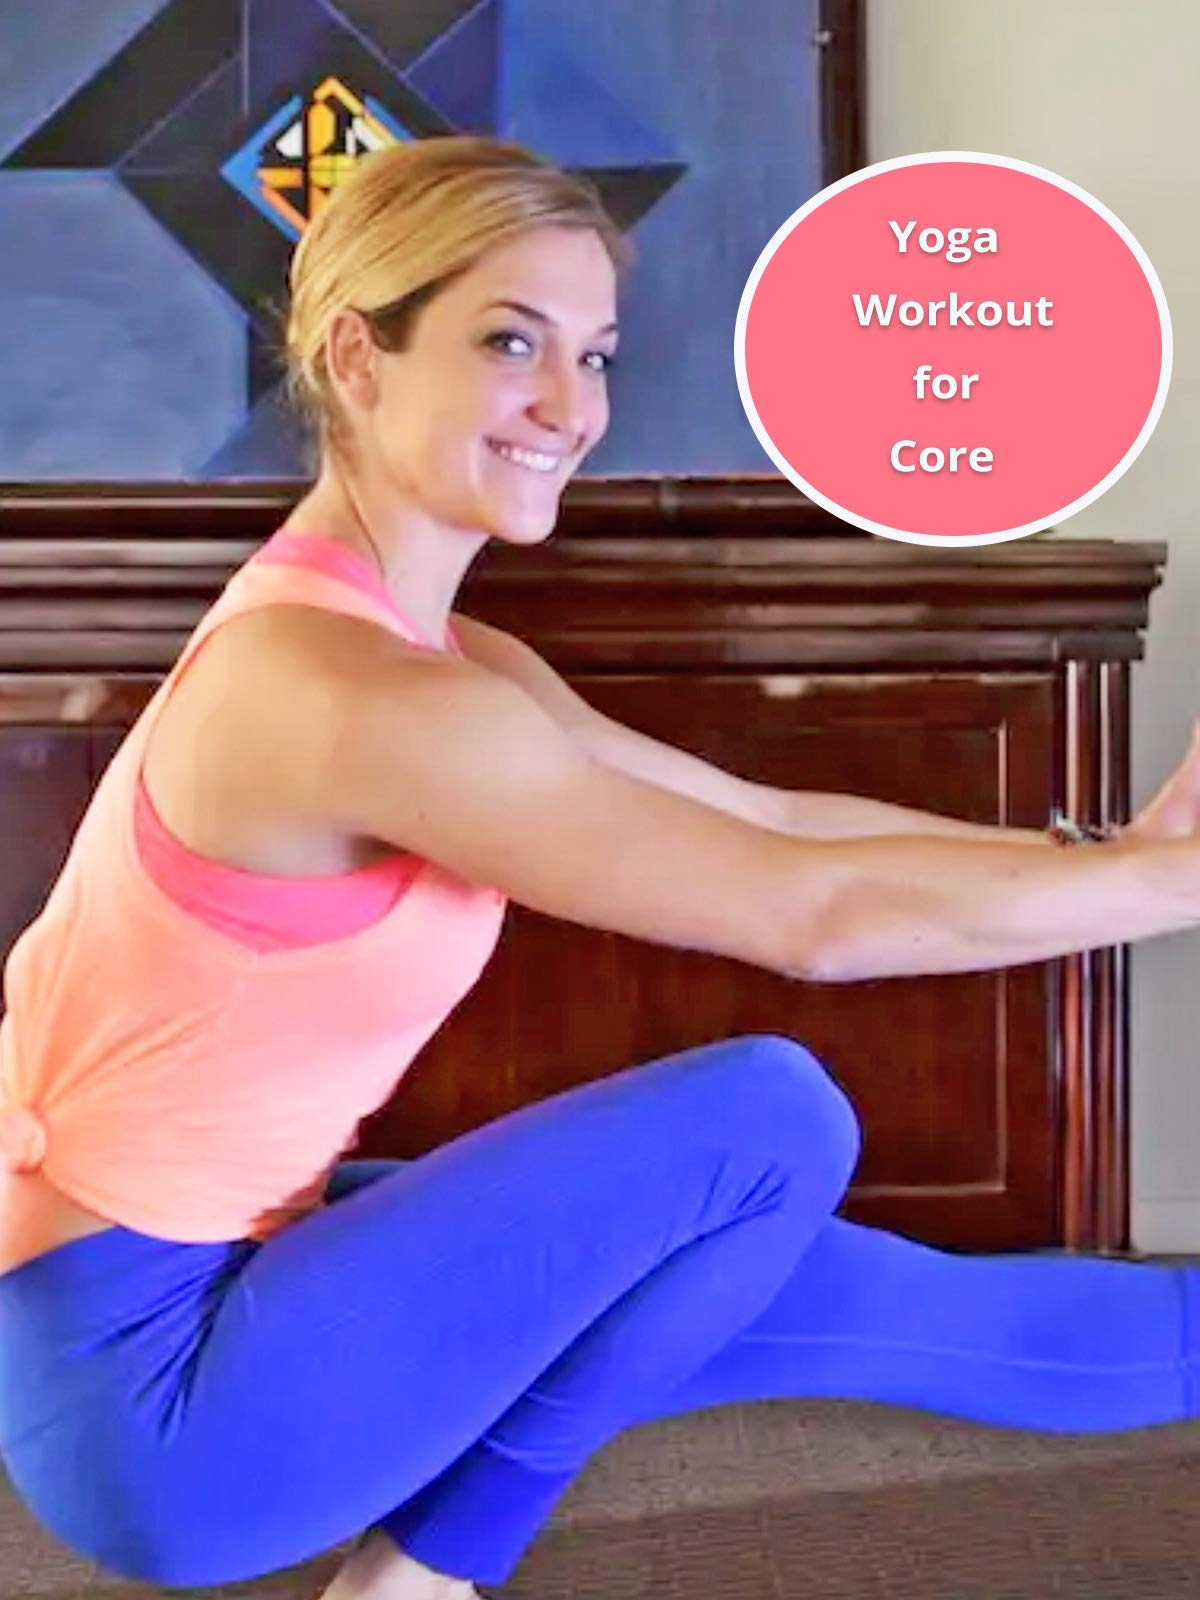 Yoga Workout for Core